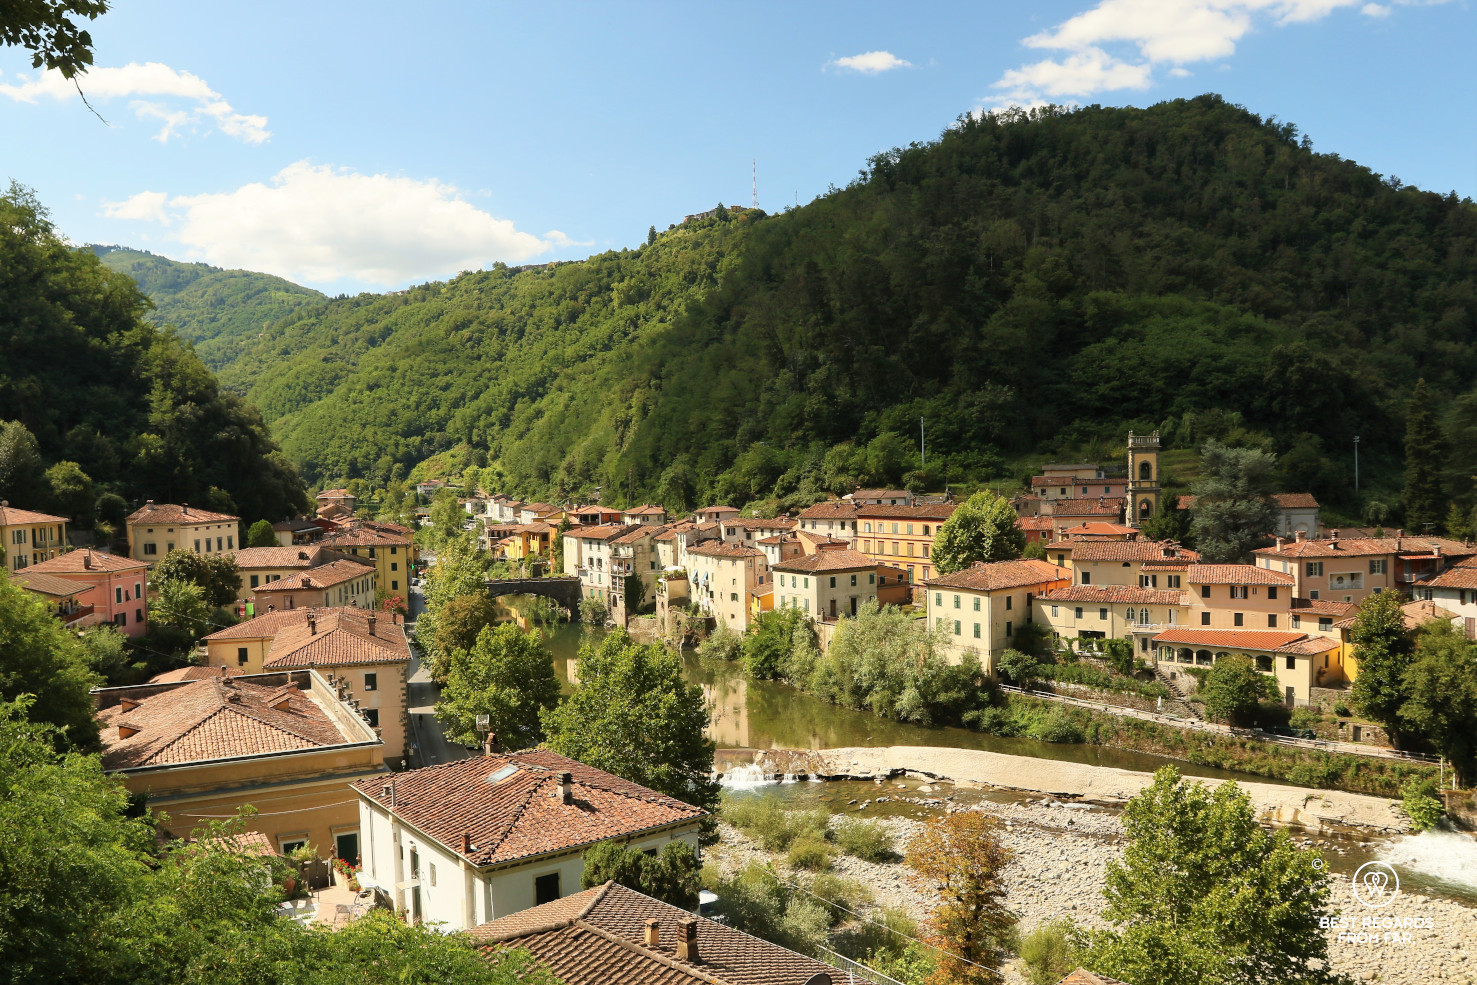 View on Bagni di Lucca, Italy